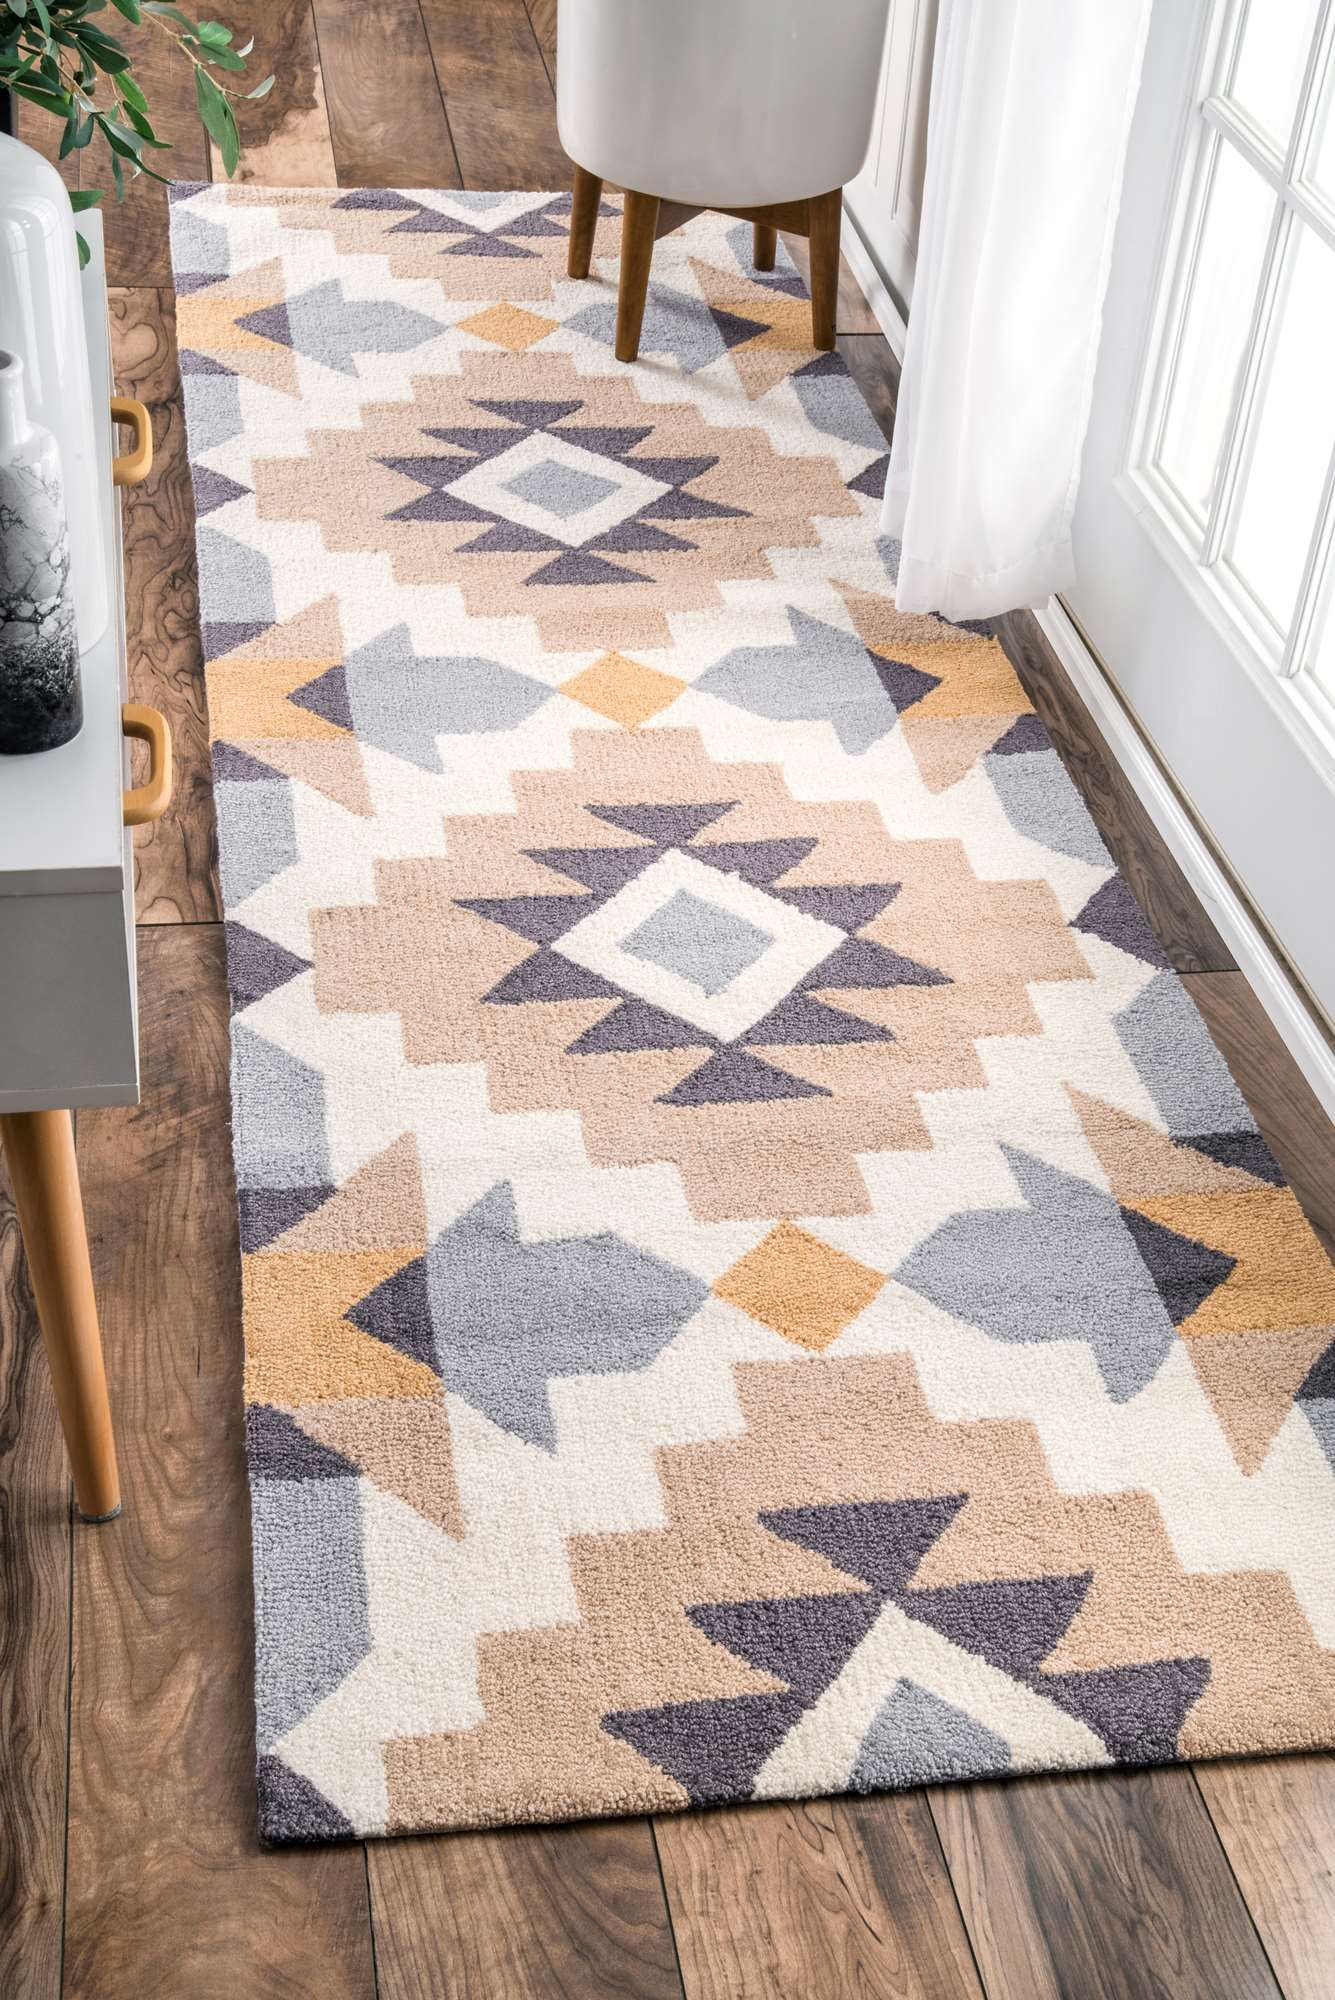 childrens kids collection for your rugs of children best rugsvilleuk s room